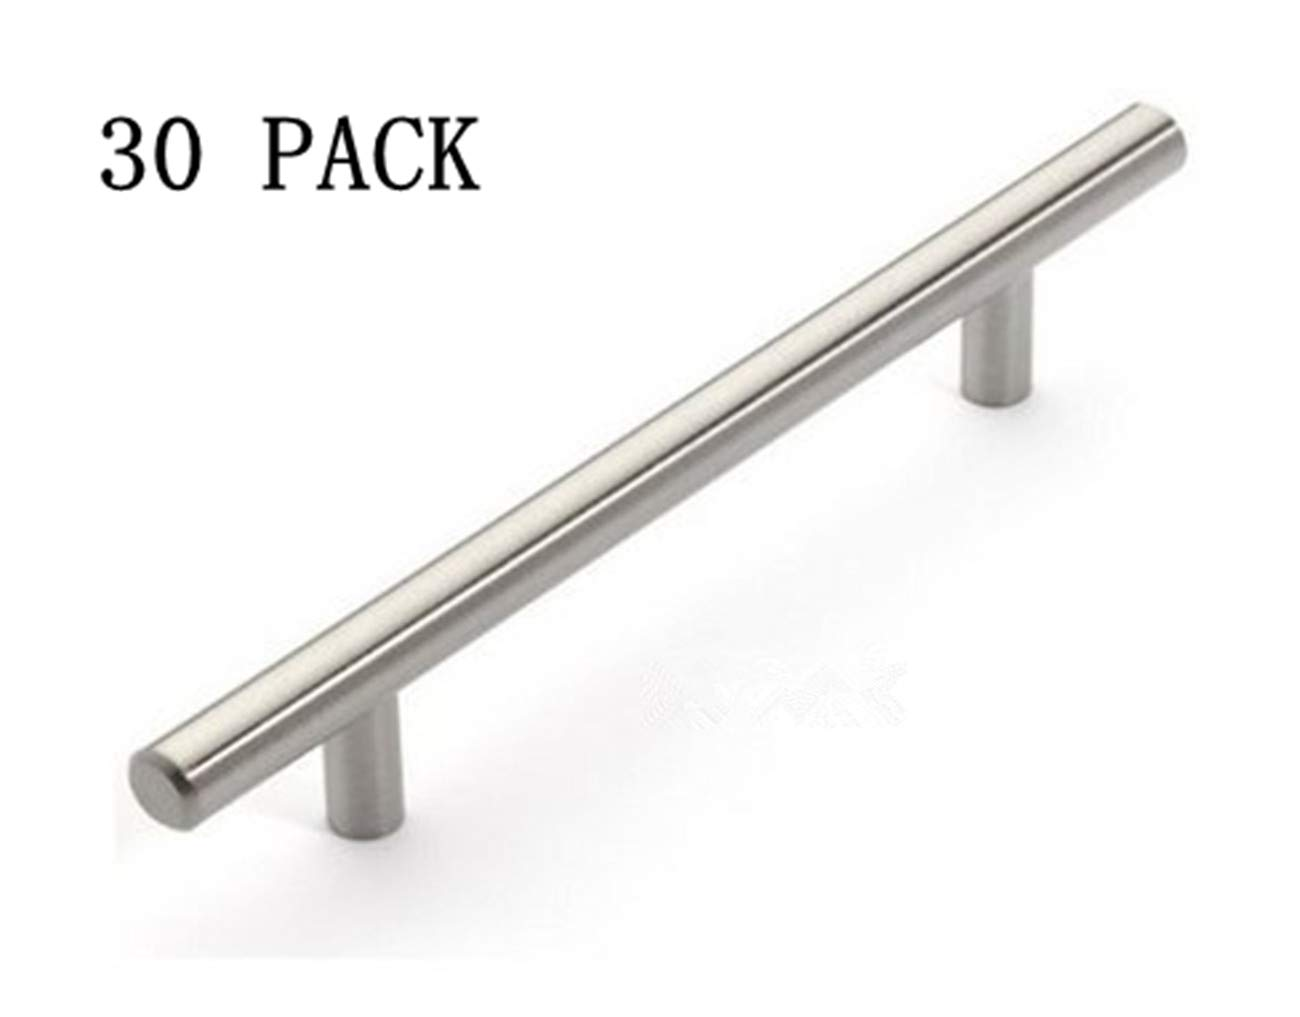 12mm Stainless Steel Kitchen Cabinet Handles T Bar Pull (8 Inches), 30 Pack by Wang-Data